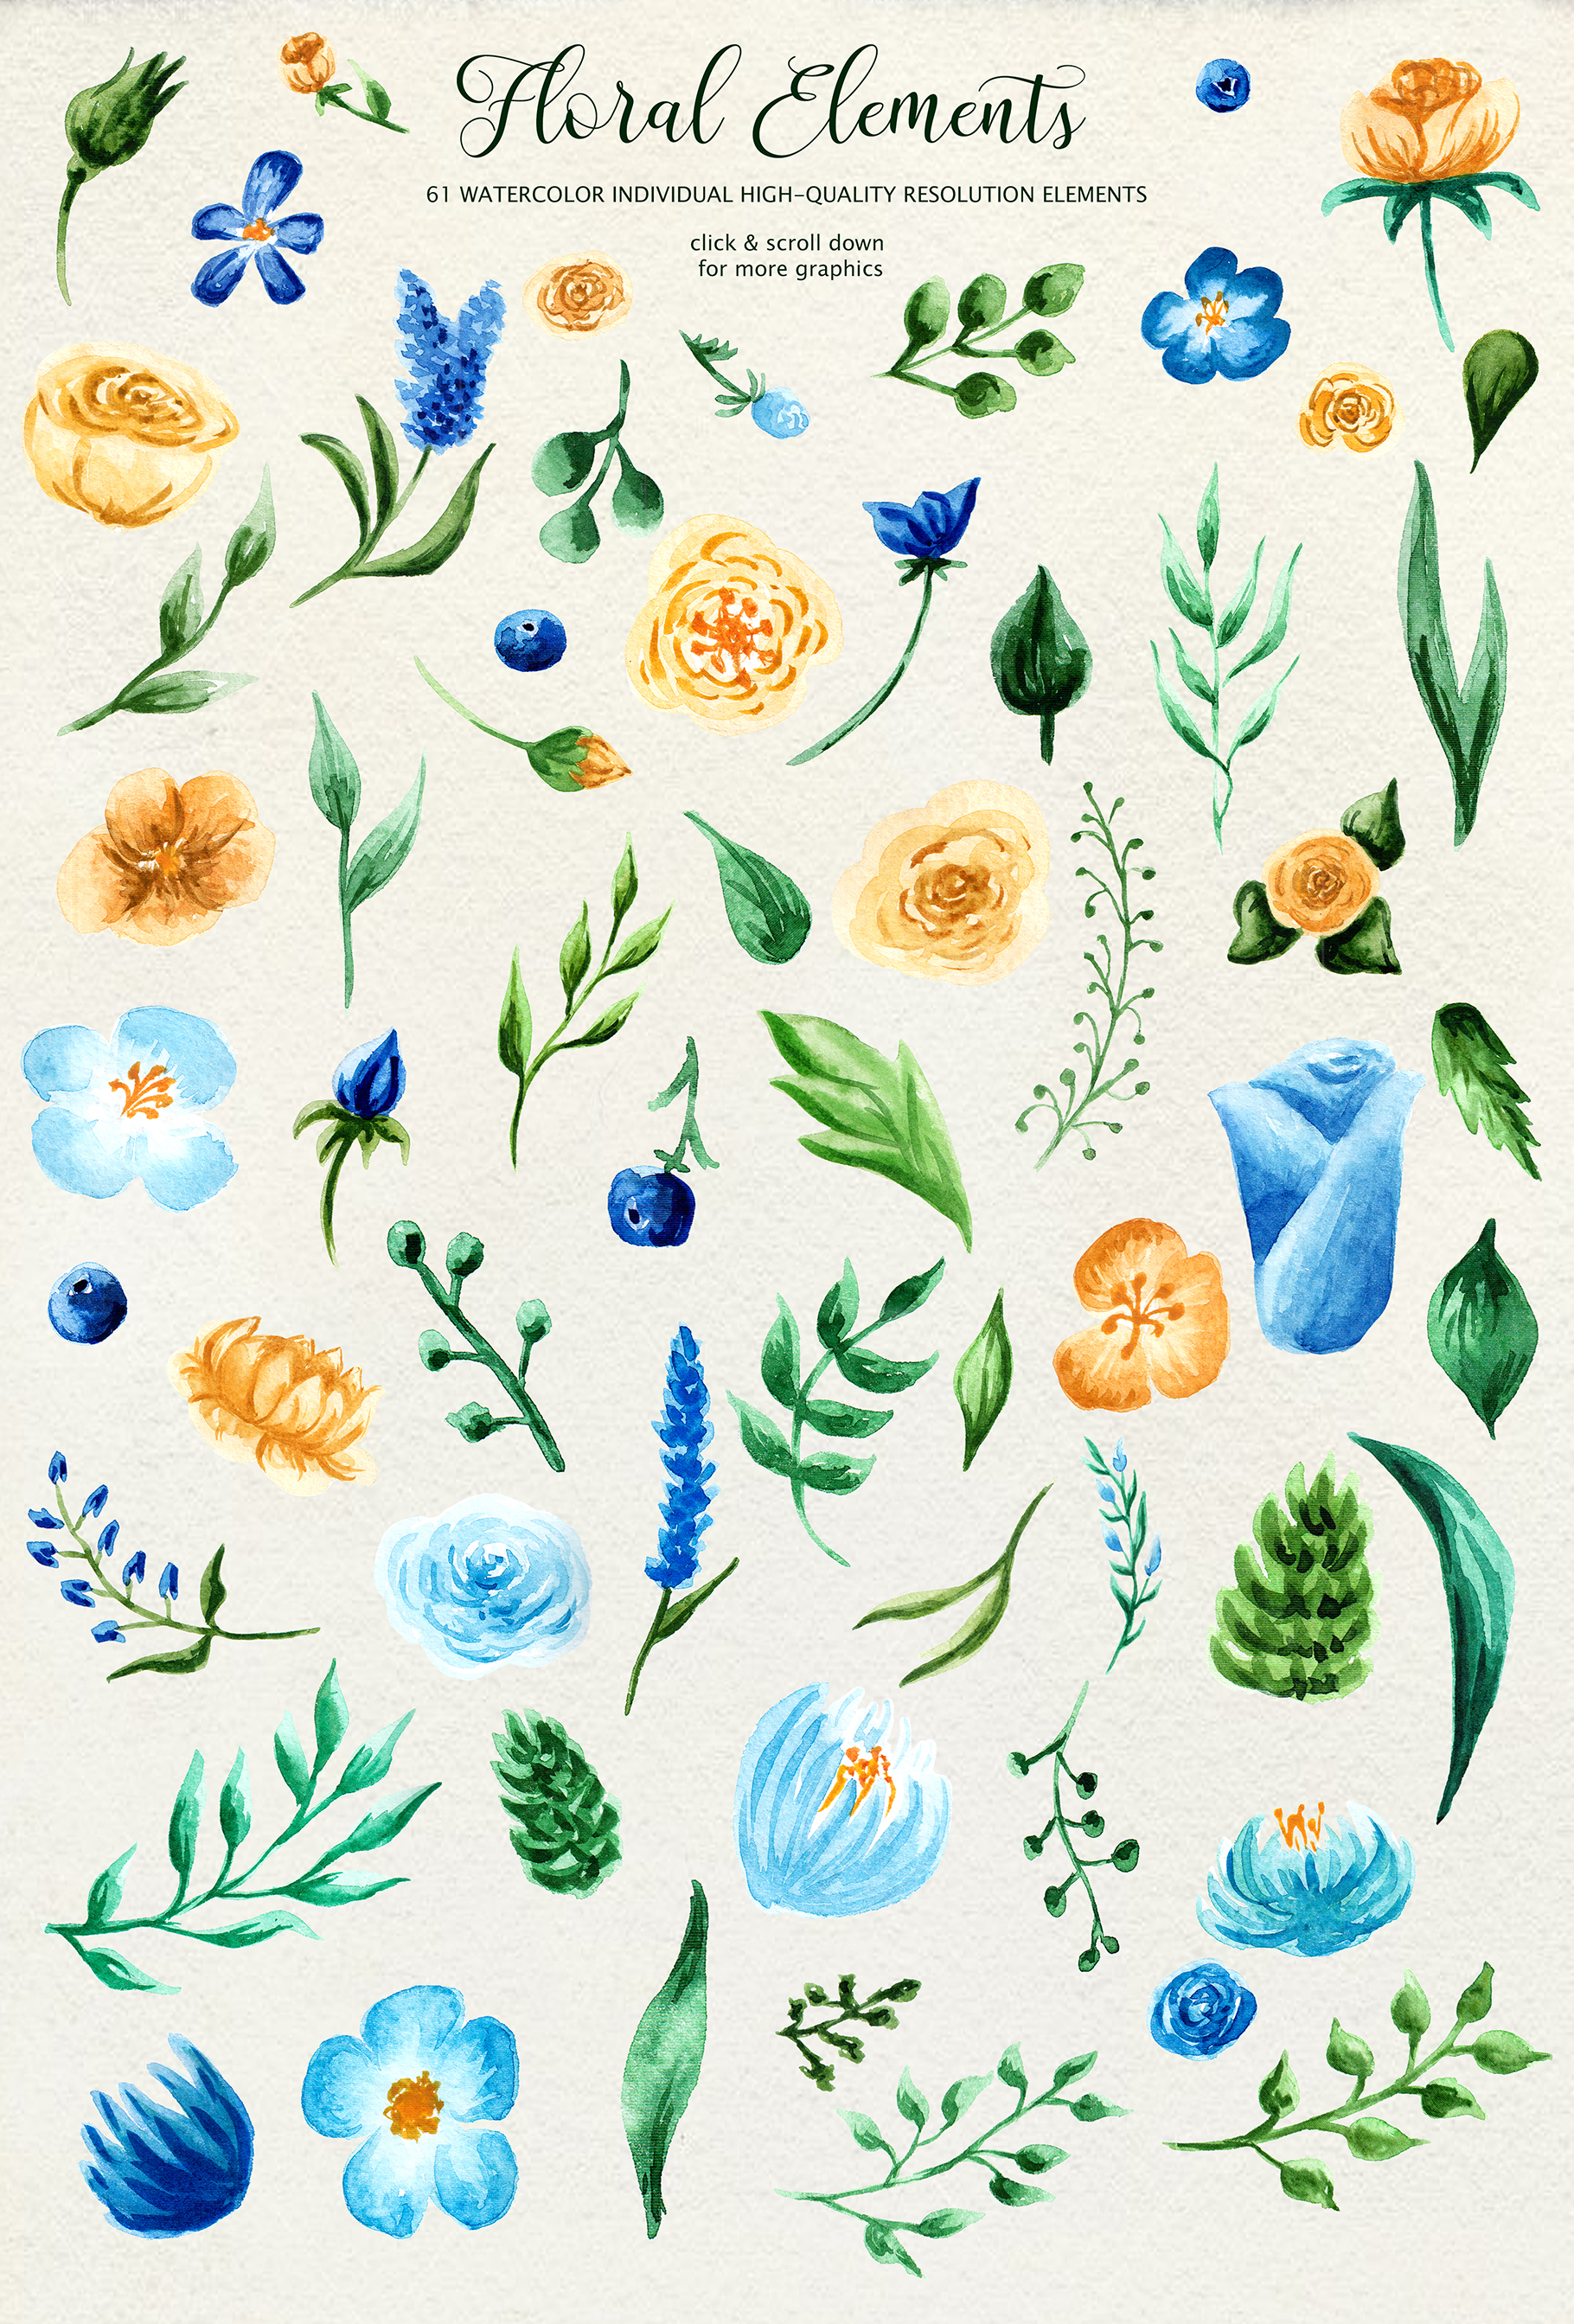 Birth of Watercolor Flower Set Graphic Illustrations By tregubova.jul - Image 2